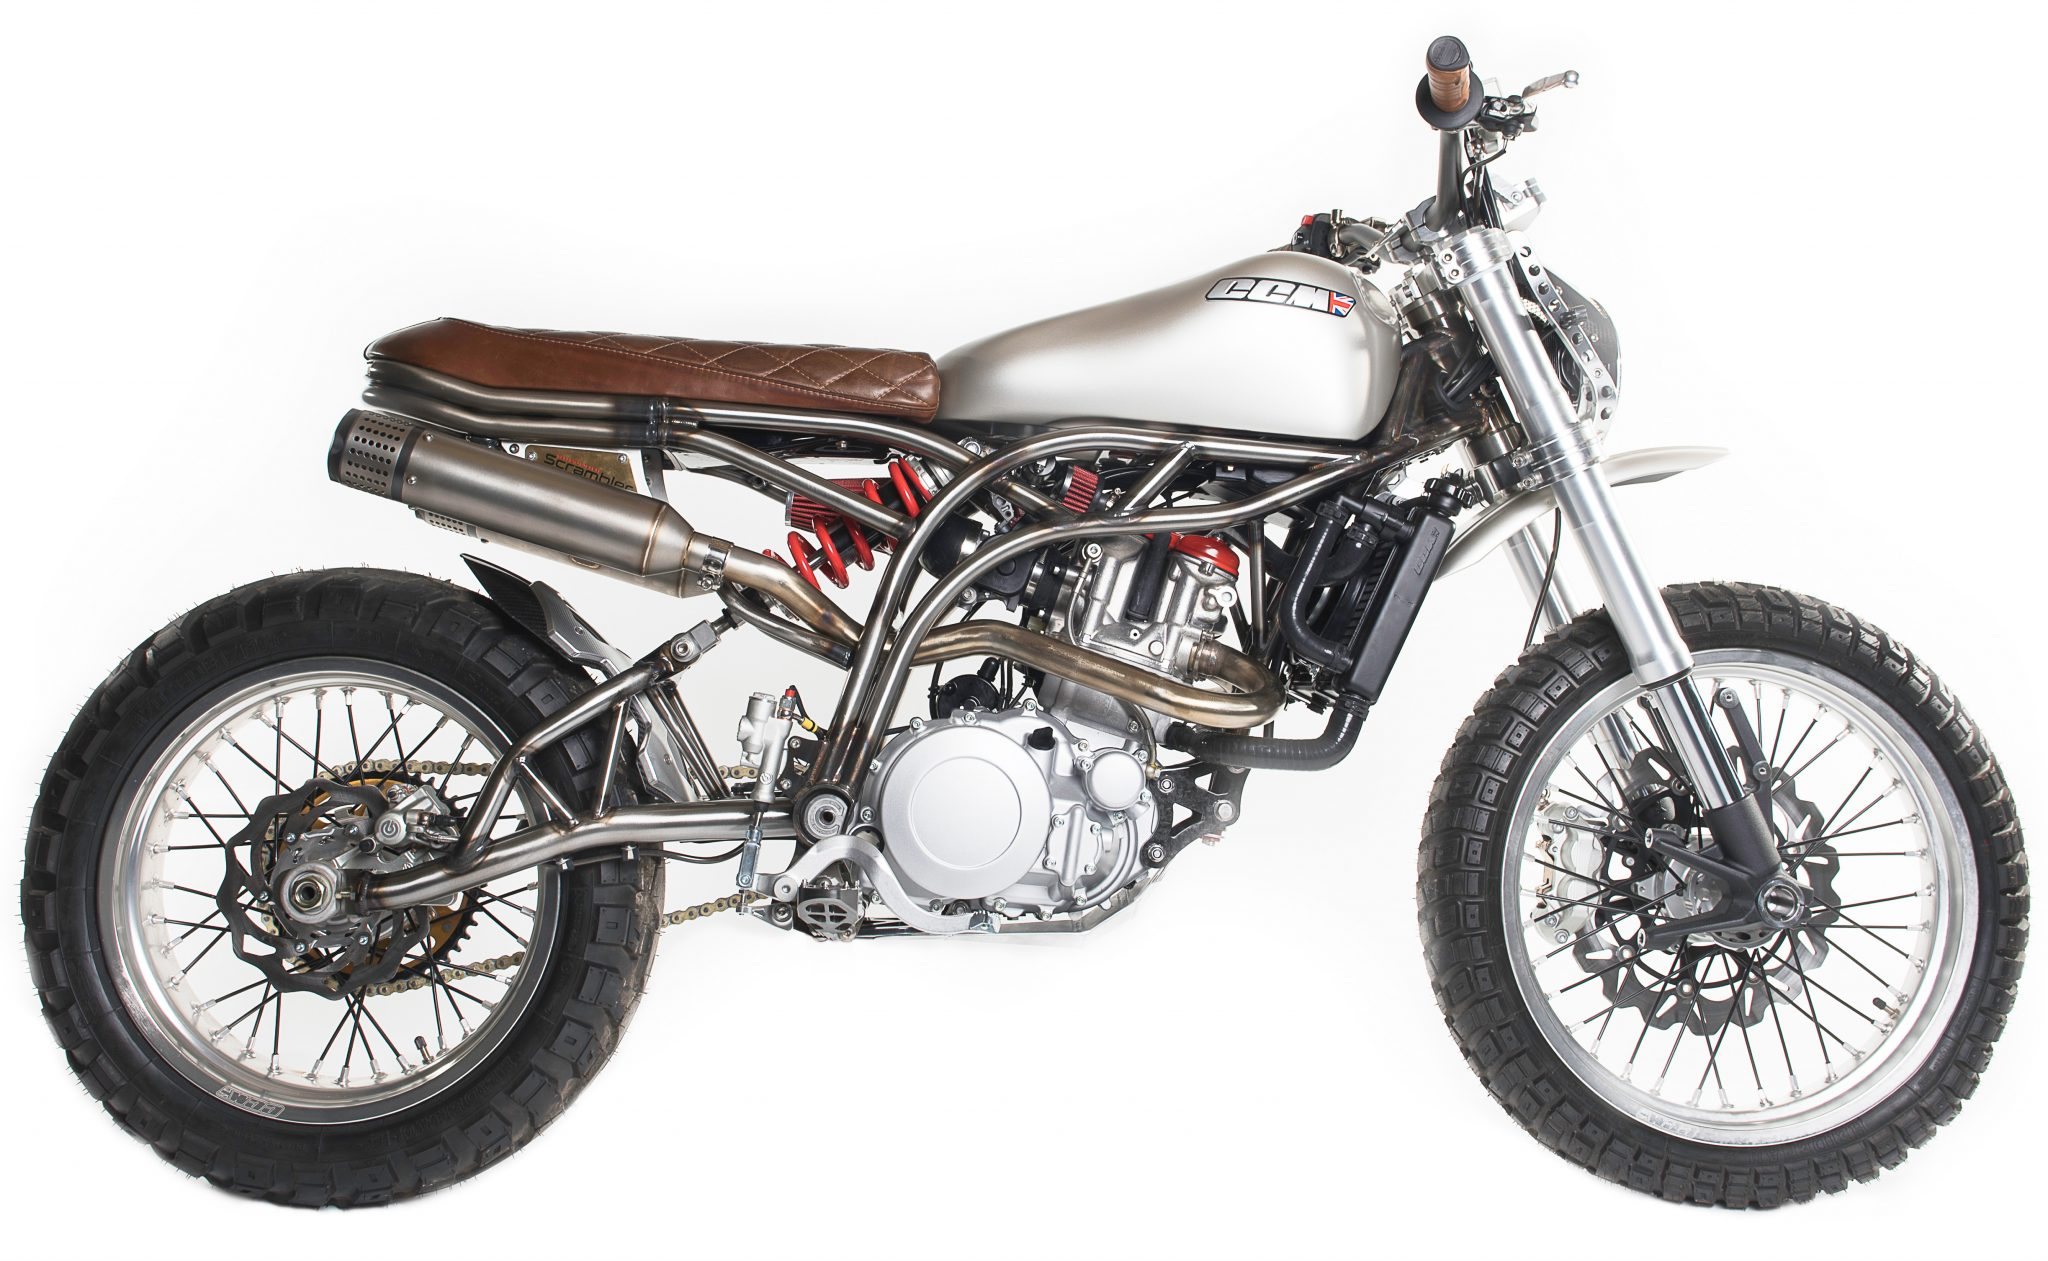 CCM Motorcycles | Great British Motorcycles